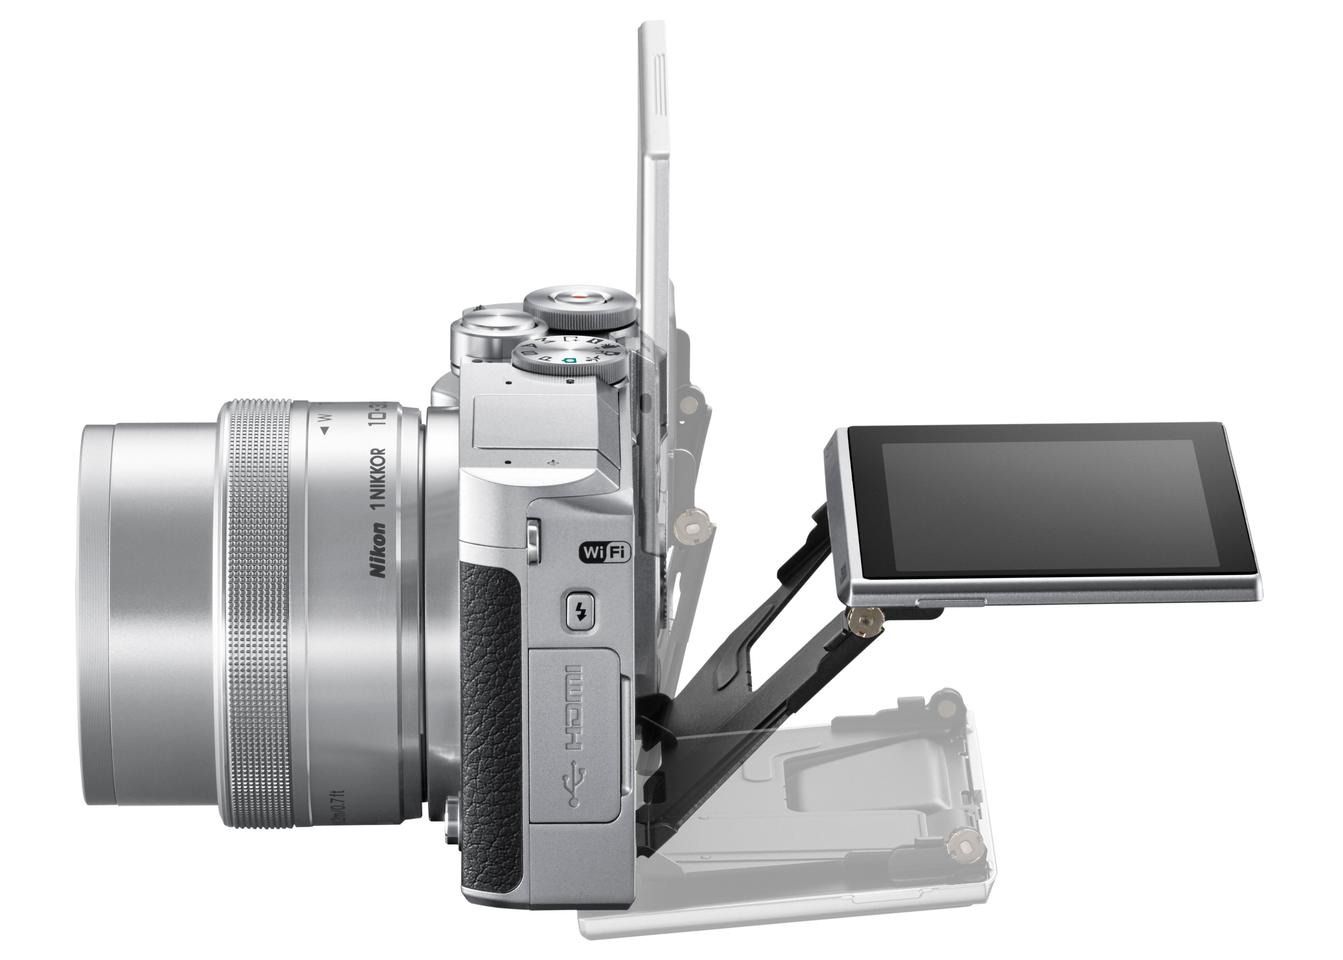 The rear monitor on the Nikon 1 J5 can be tilted to make shooting easier in awkward positions